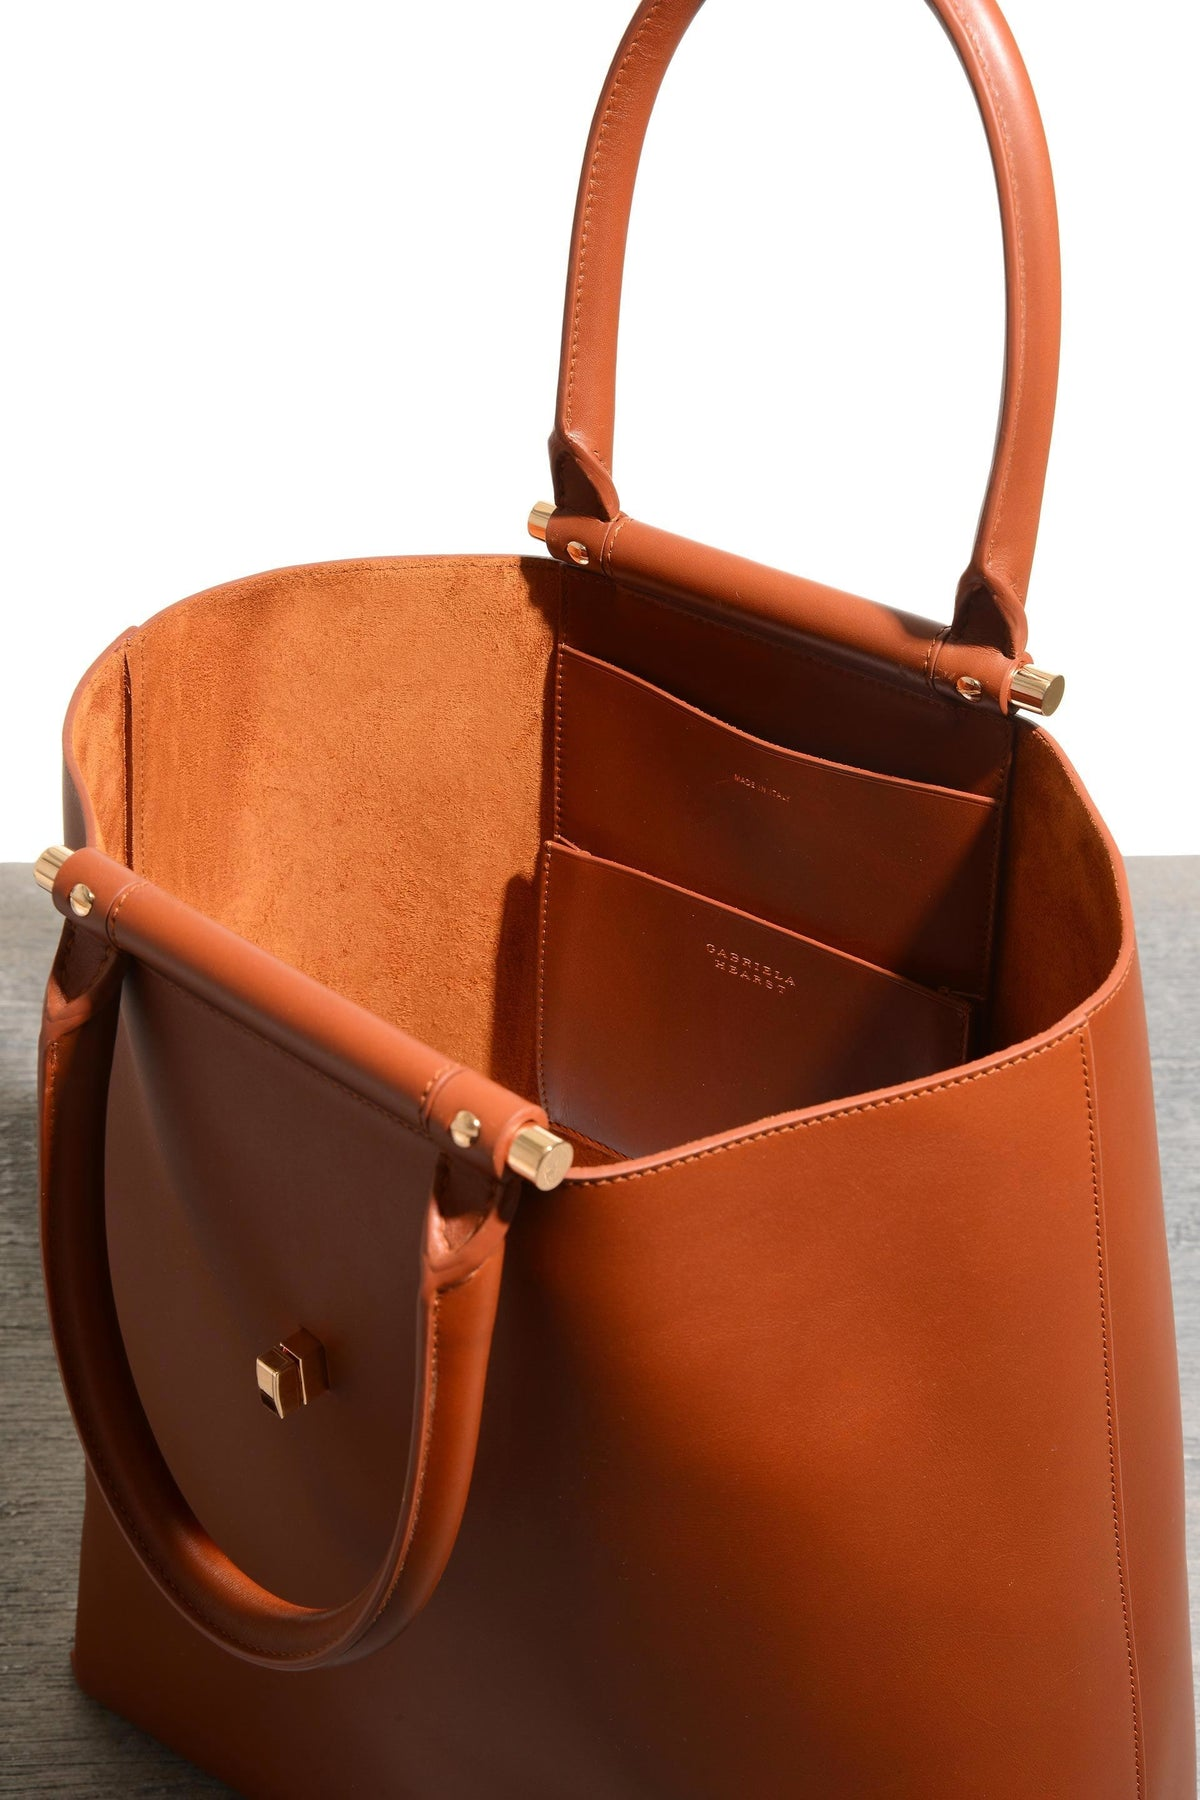 Vevers Tote